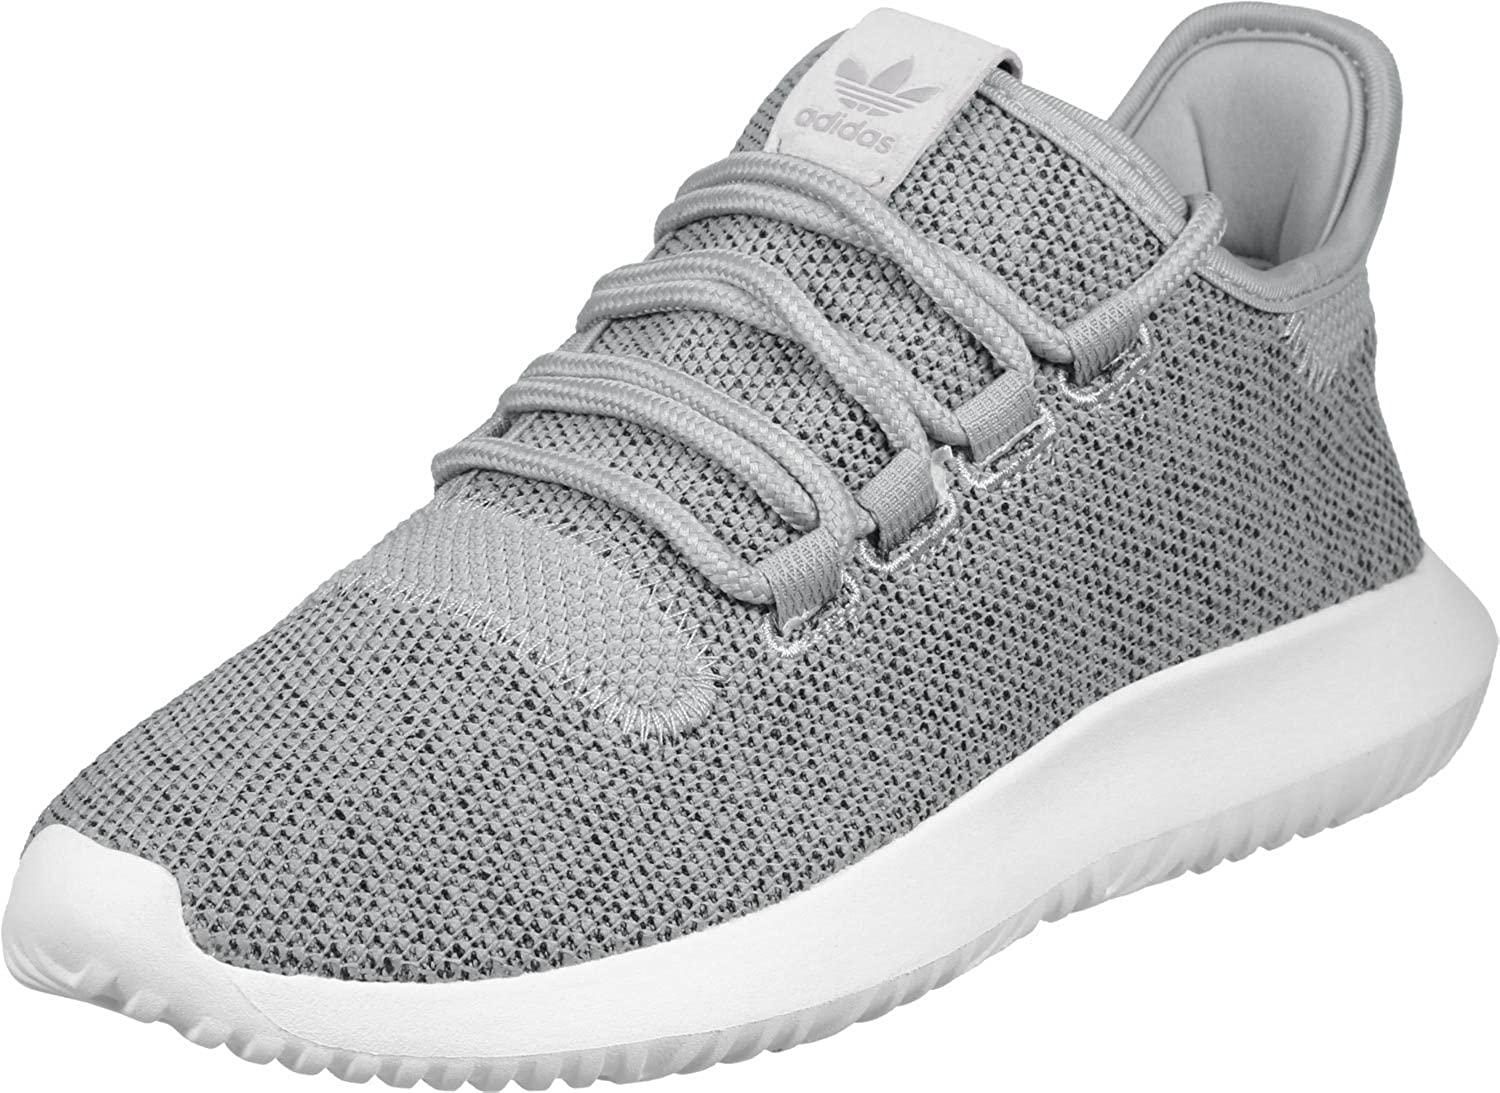 Find the Best Deals on Adidas Women's Tubular Shadow Casual